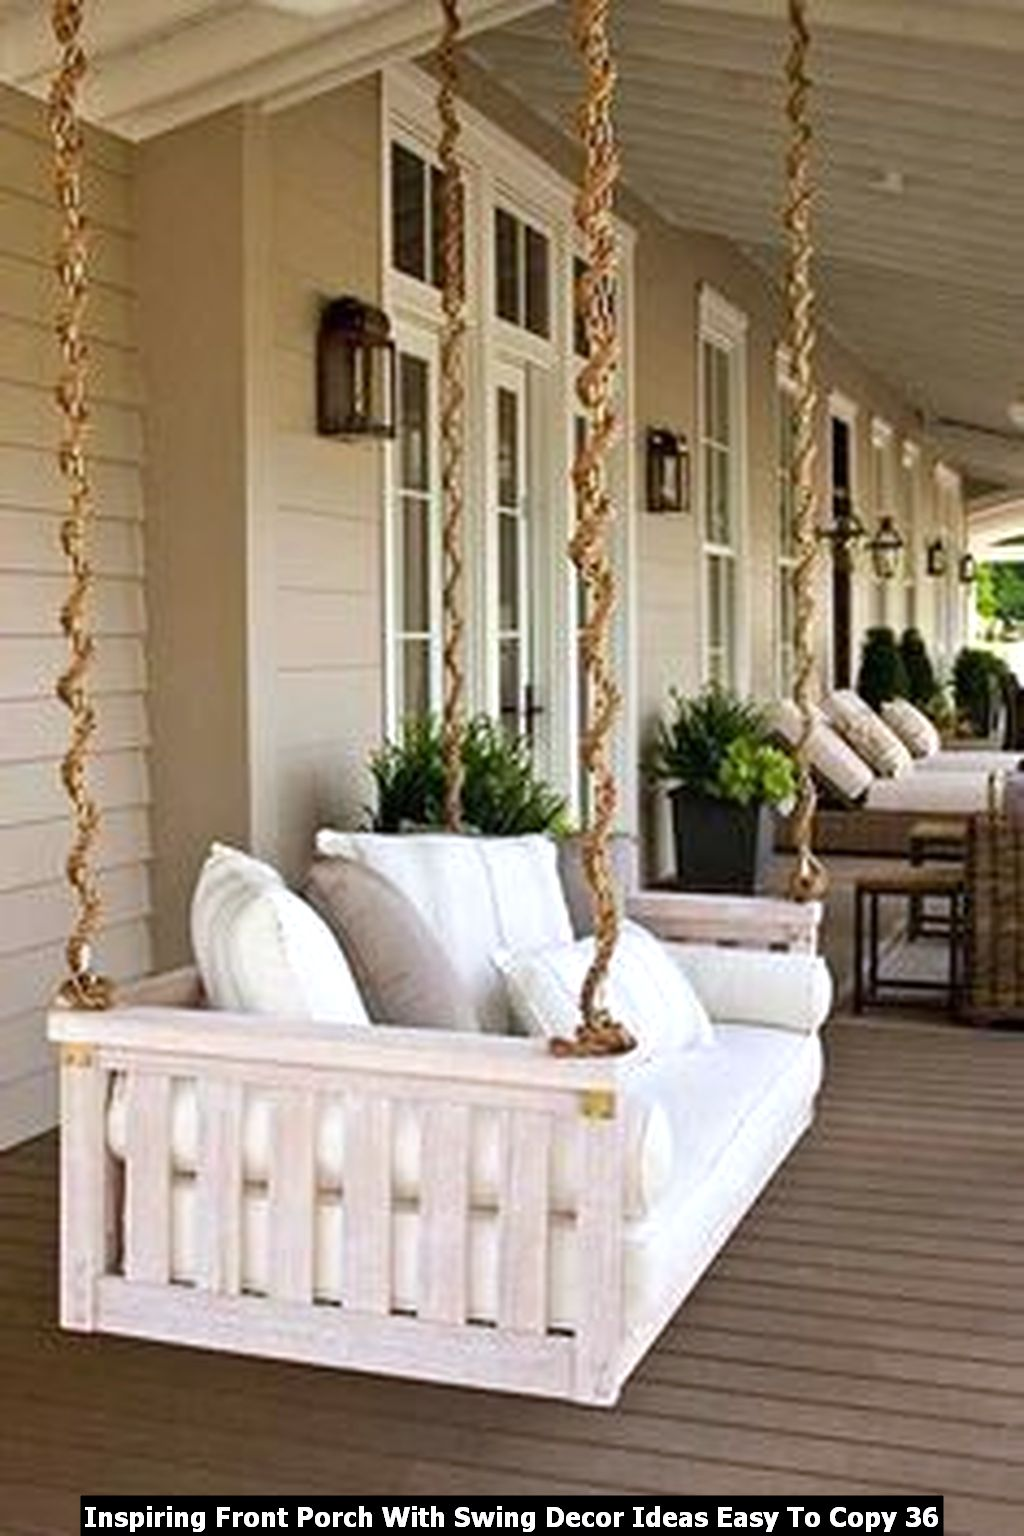 Inspiring Front Porch With Swing Decor Ideas Easy To Copy 36